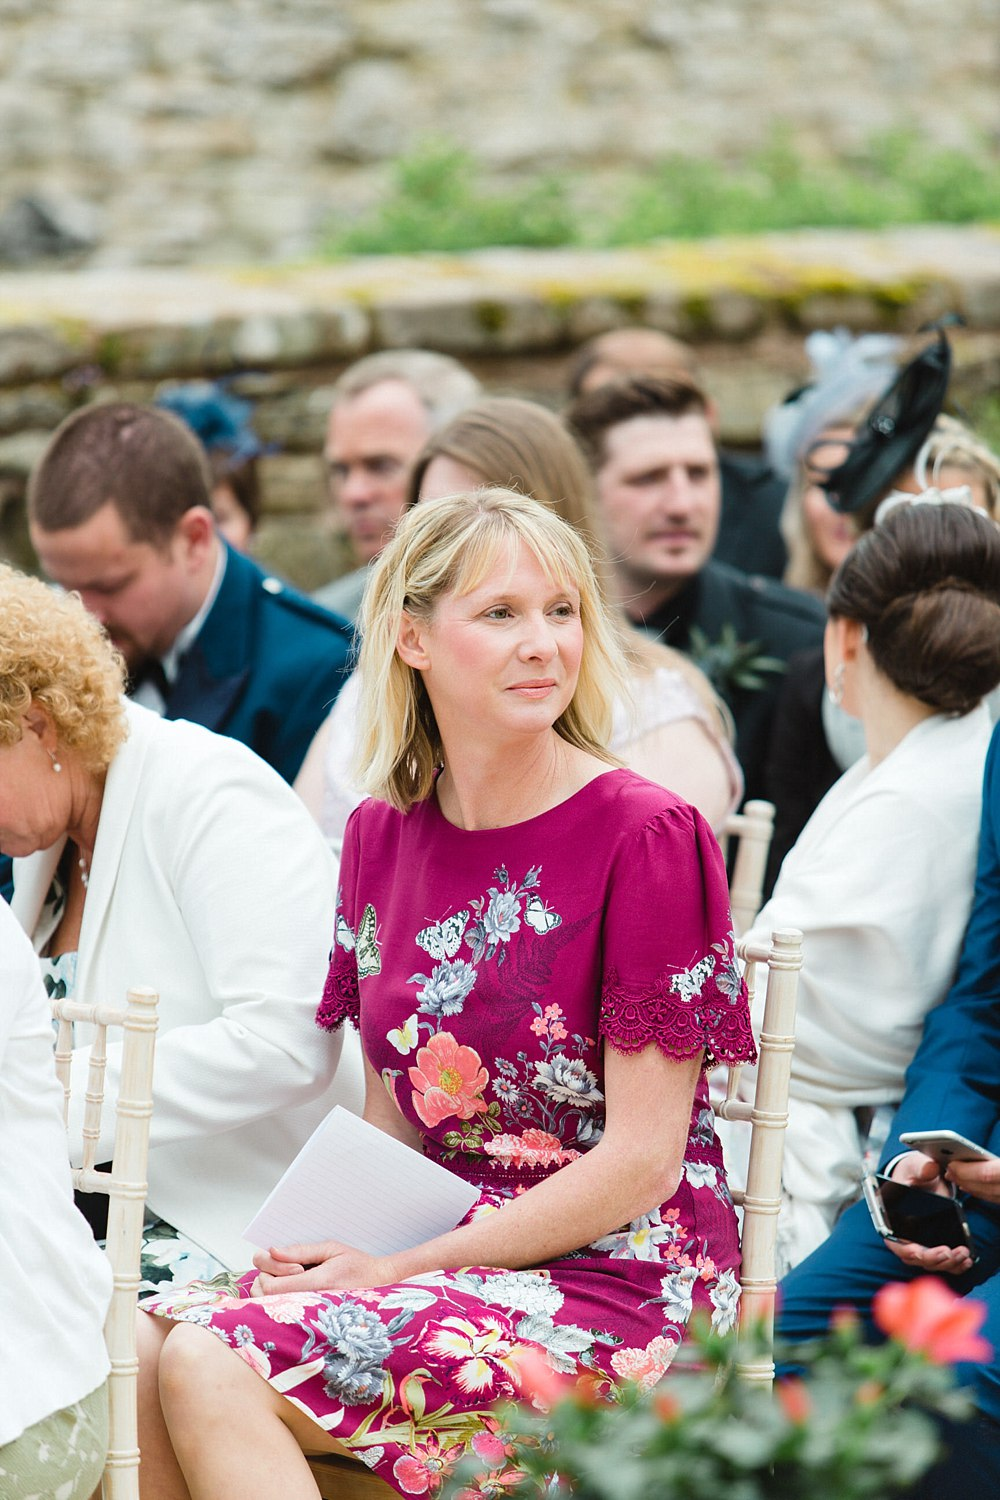 weddings elopements scotland bright airy relaxed 3-3.jpg